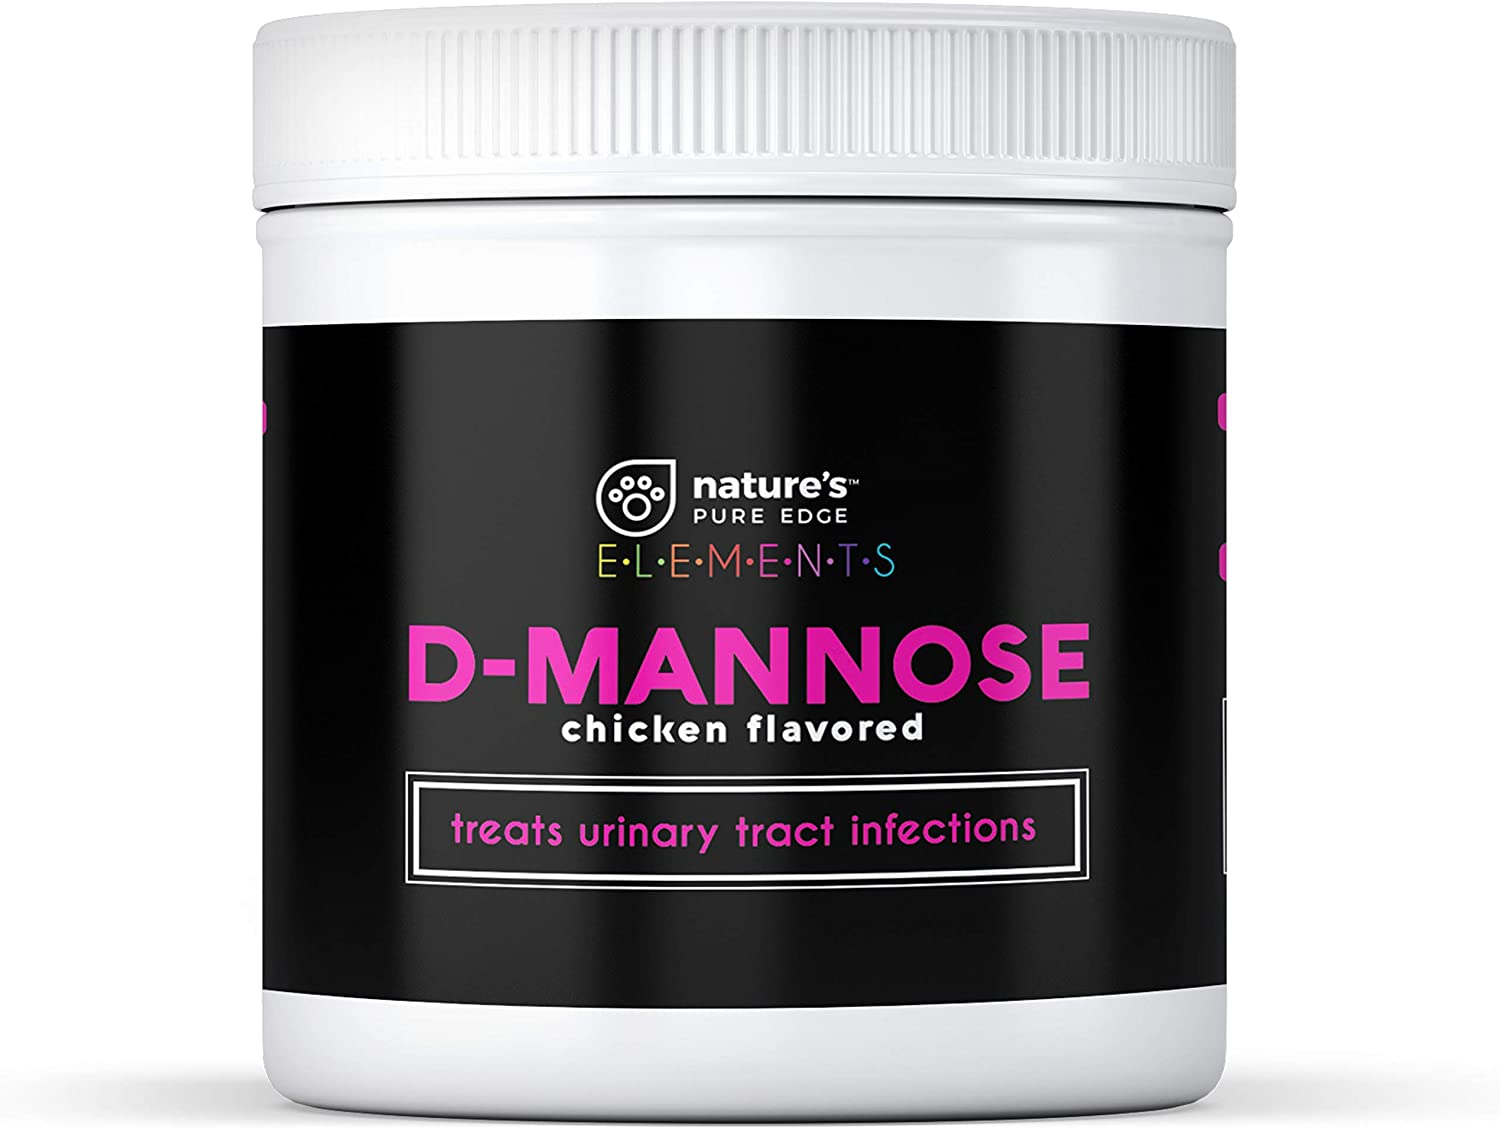 D-Mannose Max 60% OFF Supplement with Real Super intense SALE Chicken for Dogs and Cats. Fo Use